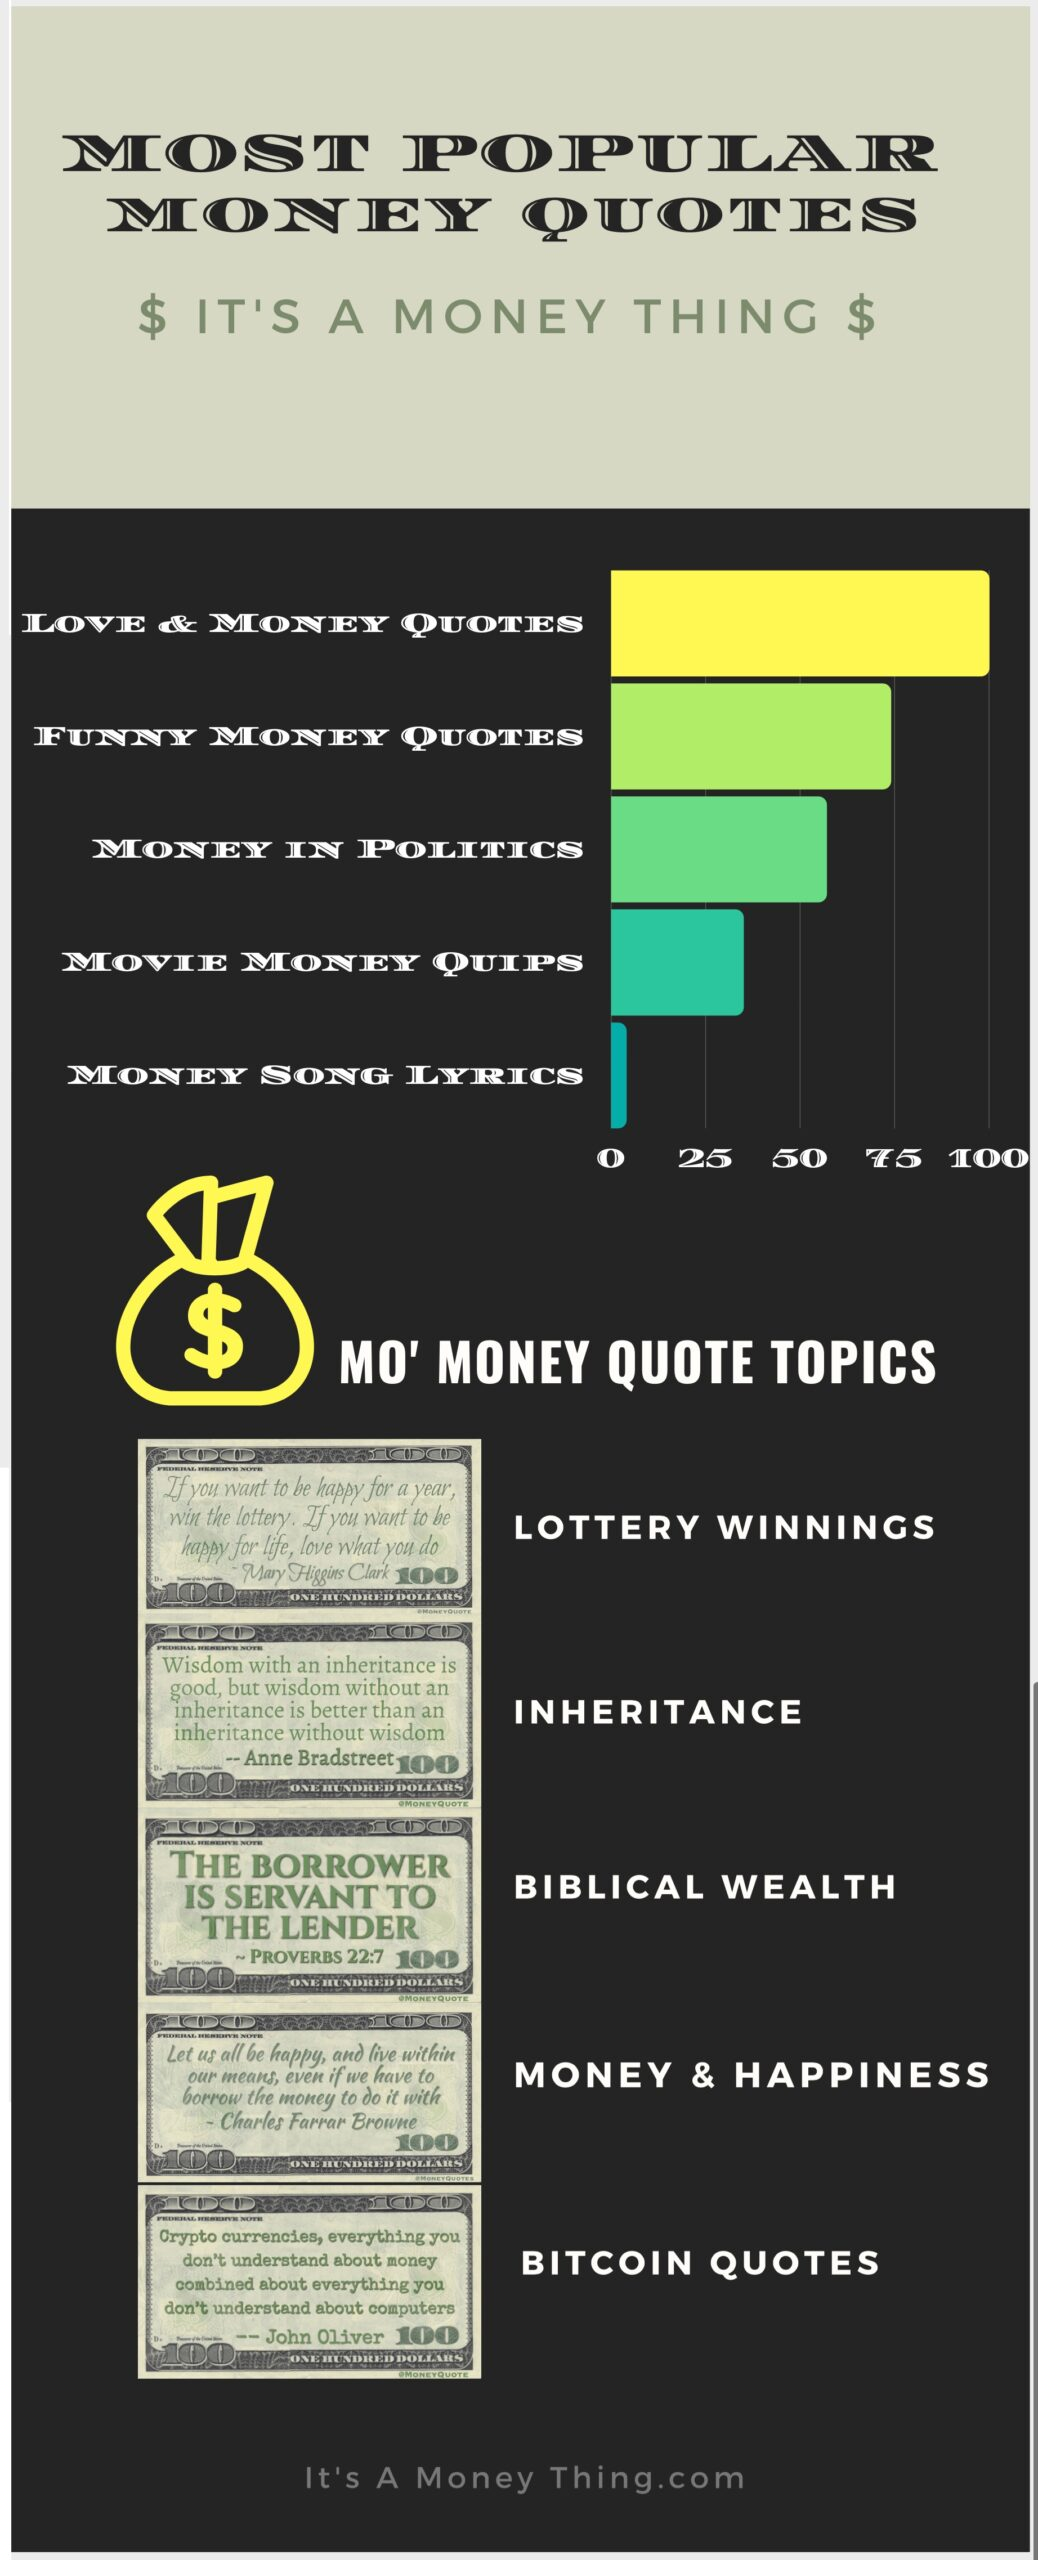 Popular Money Quotes Infographic